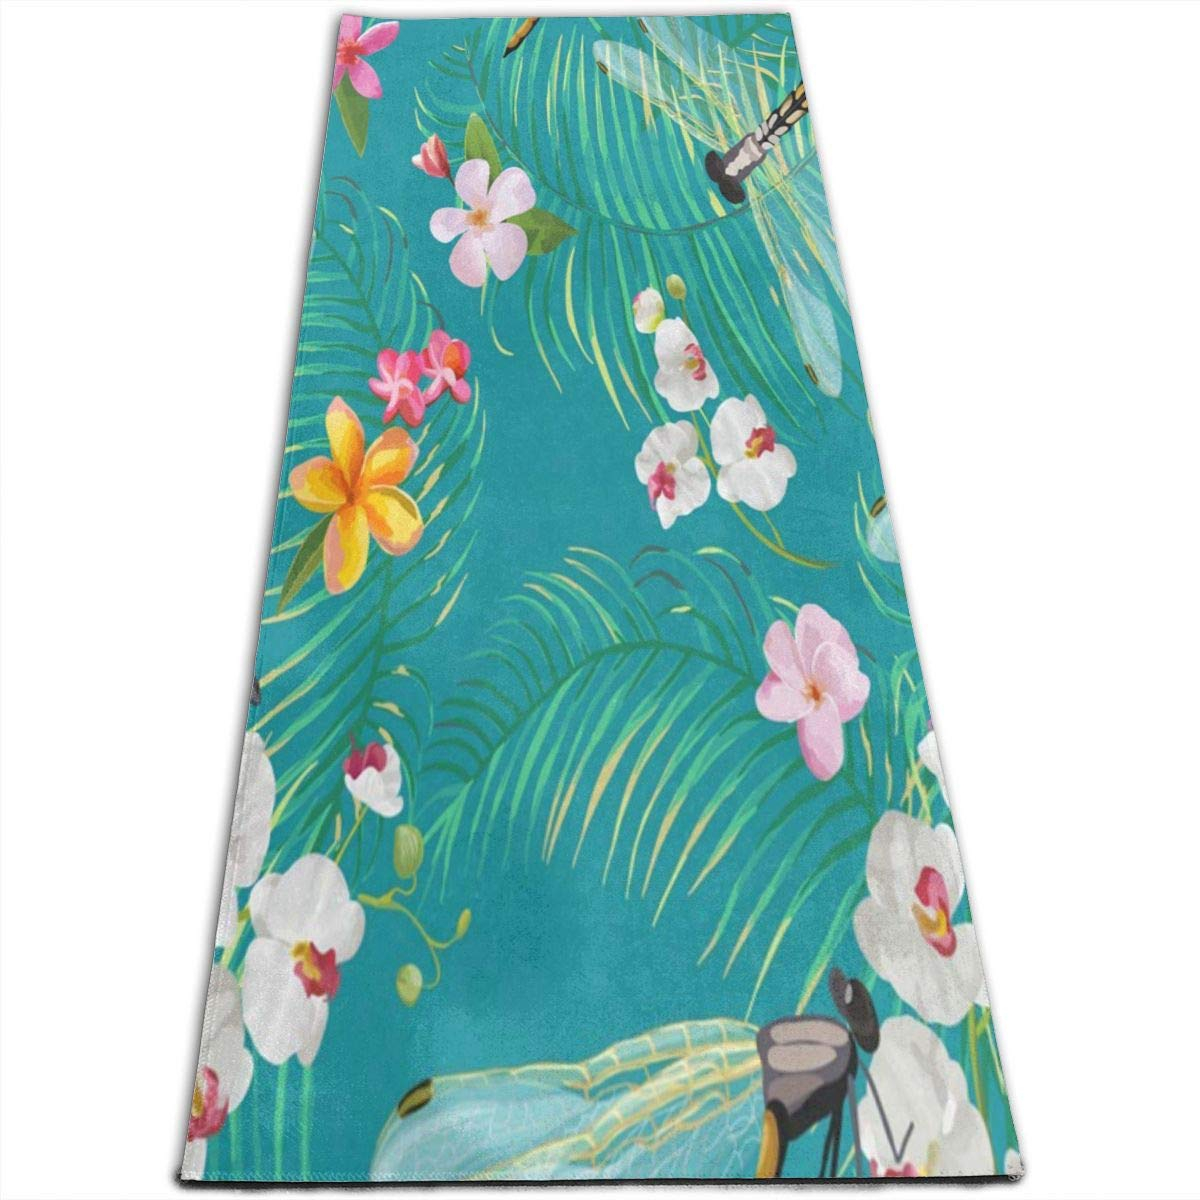 Amazon.com : Tropical Floral Dragonfly Yoga Mat-All-Purpose ...